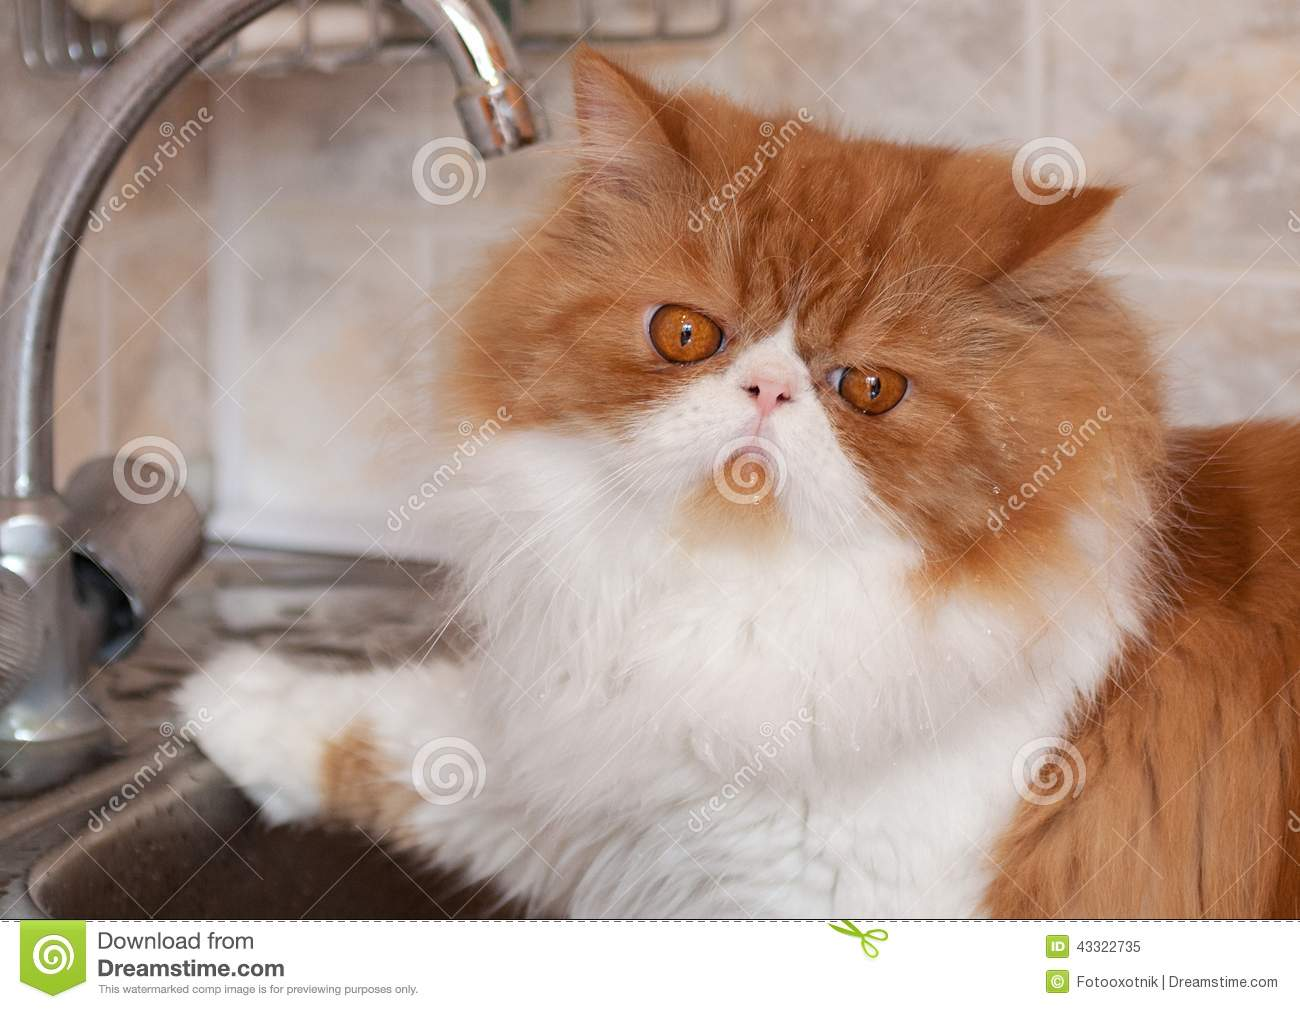 red cat with water droplets on a muzzle stock photo - image: 43322735